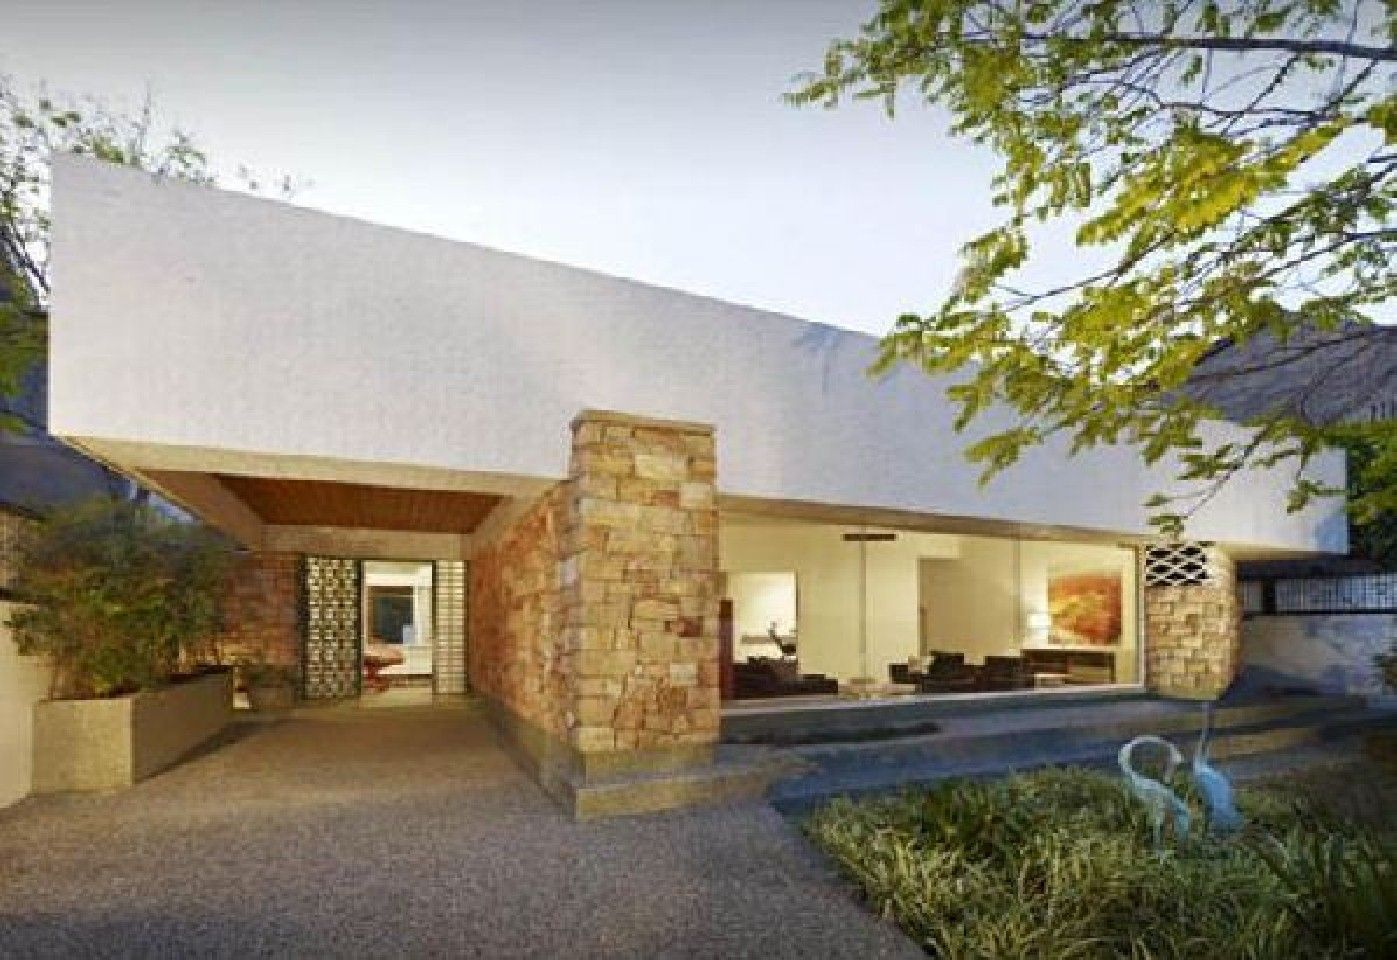 designs house design of the 60s style | House design ...